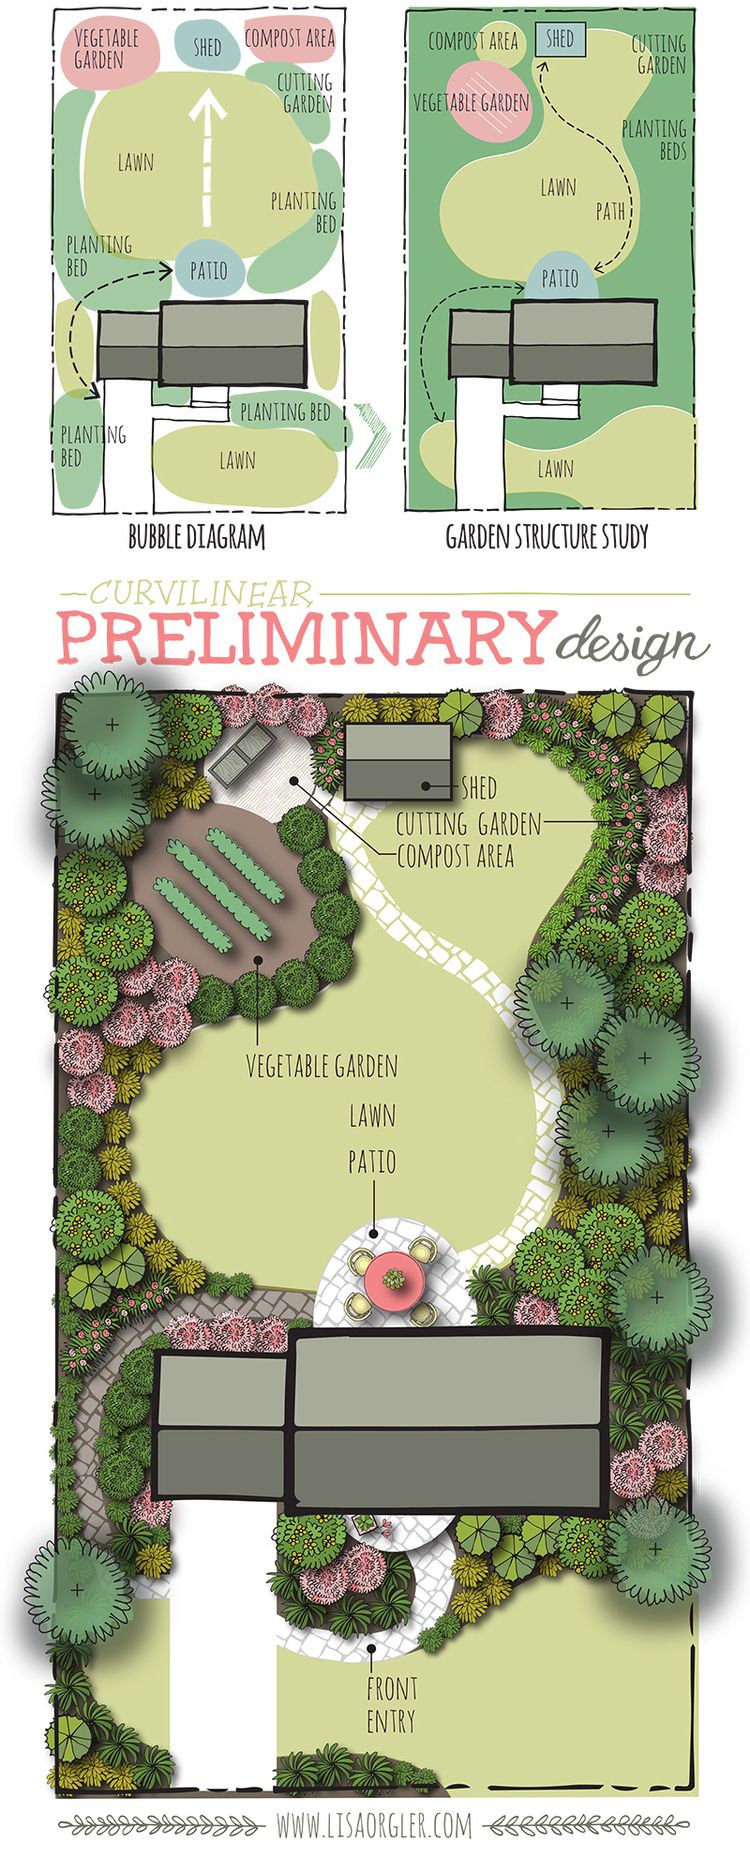 feb 21 curvilinear preliminary design design process landscape